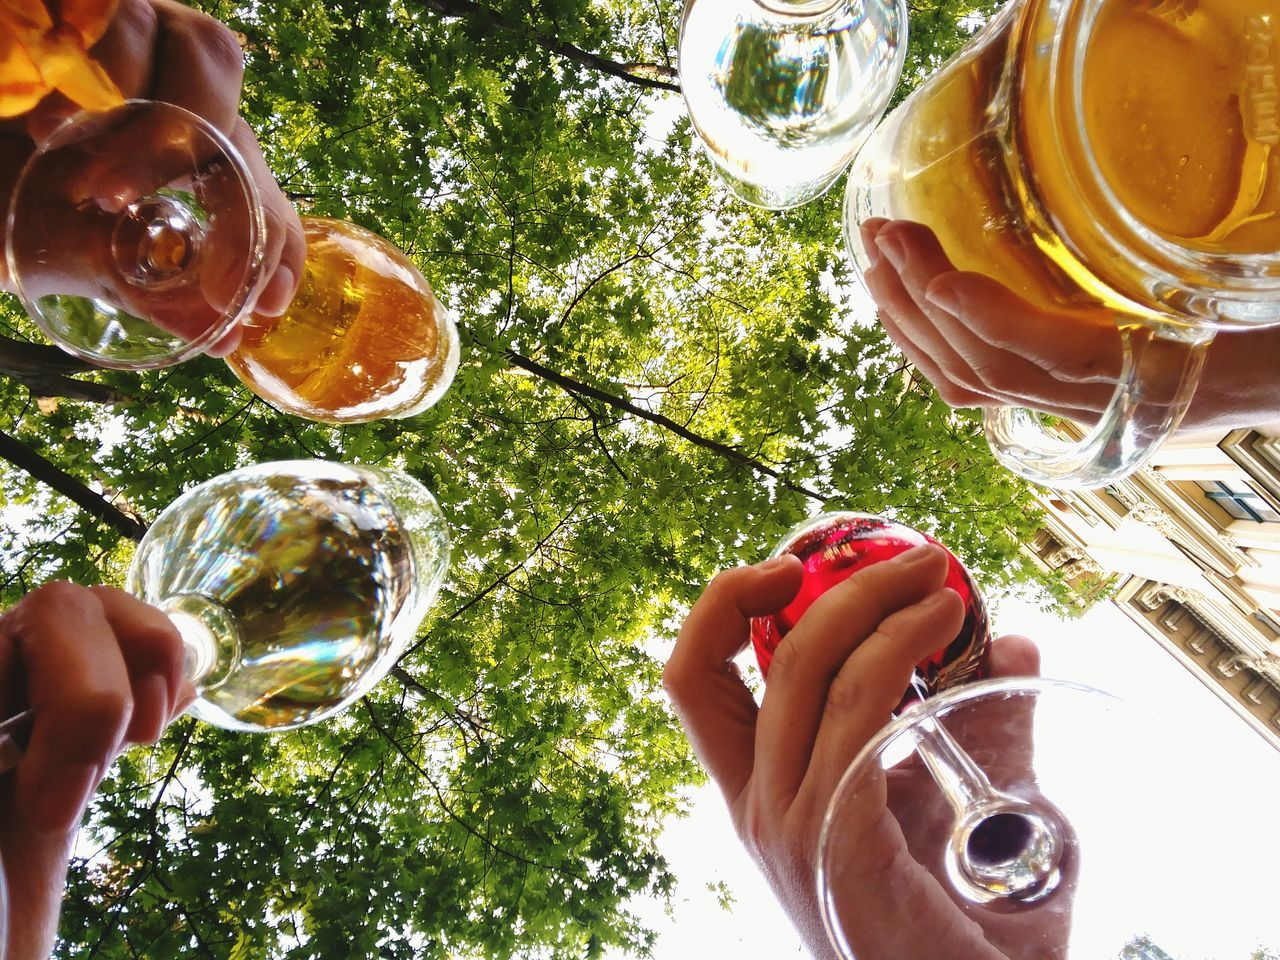 Human Body Part One Person Human Hand Adults Only Personal Perspective Holding Only Women People One Woman Only Real People Refreshment Day High Angle View Drink Lifestyles Adult Outdoors Low Section Leisure Activity Drinking Beer Drinking Afterwork Beer Sommergefühle Wine Not